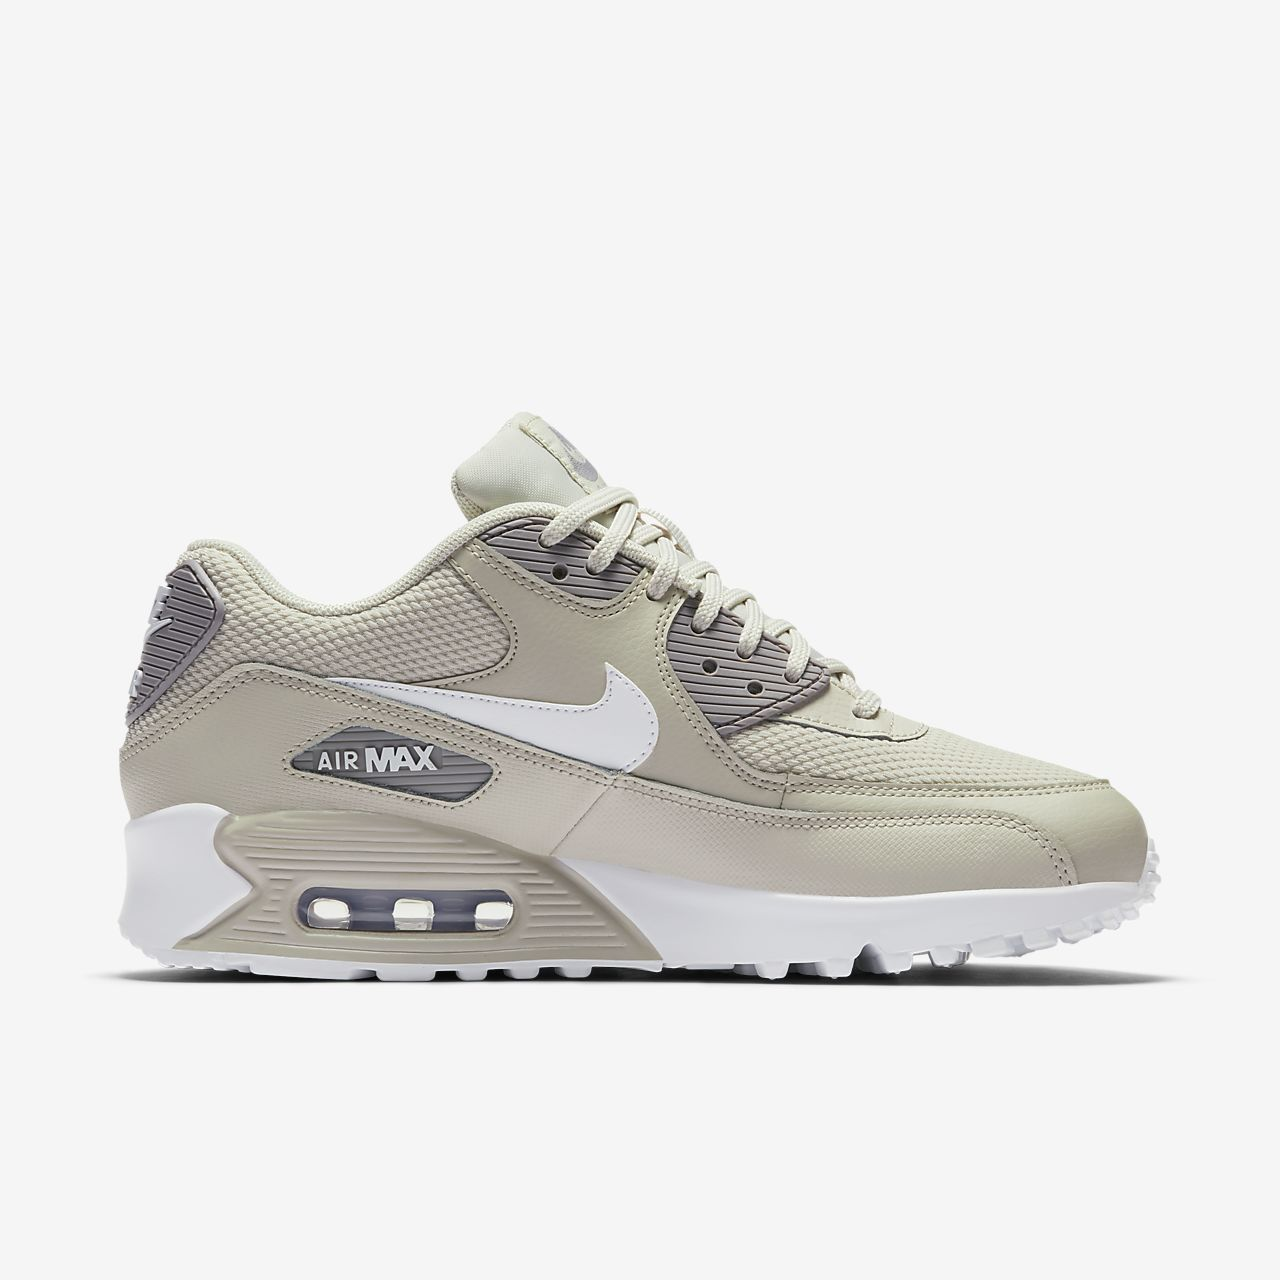 Nike Sportswear AIR MAX 90 - Trainers - desert sand/white/atmosphere grey OfemPuj